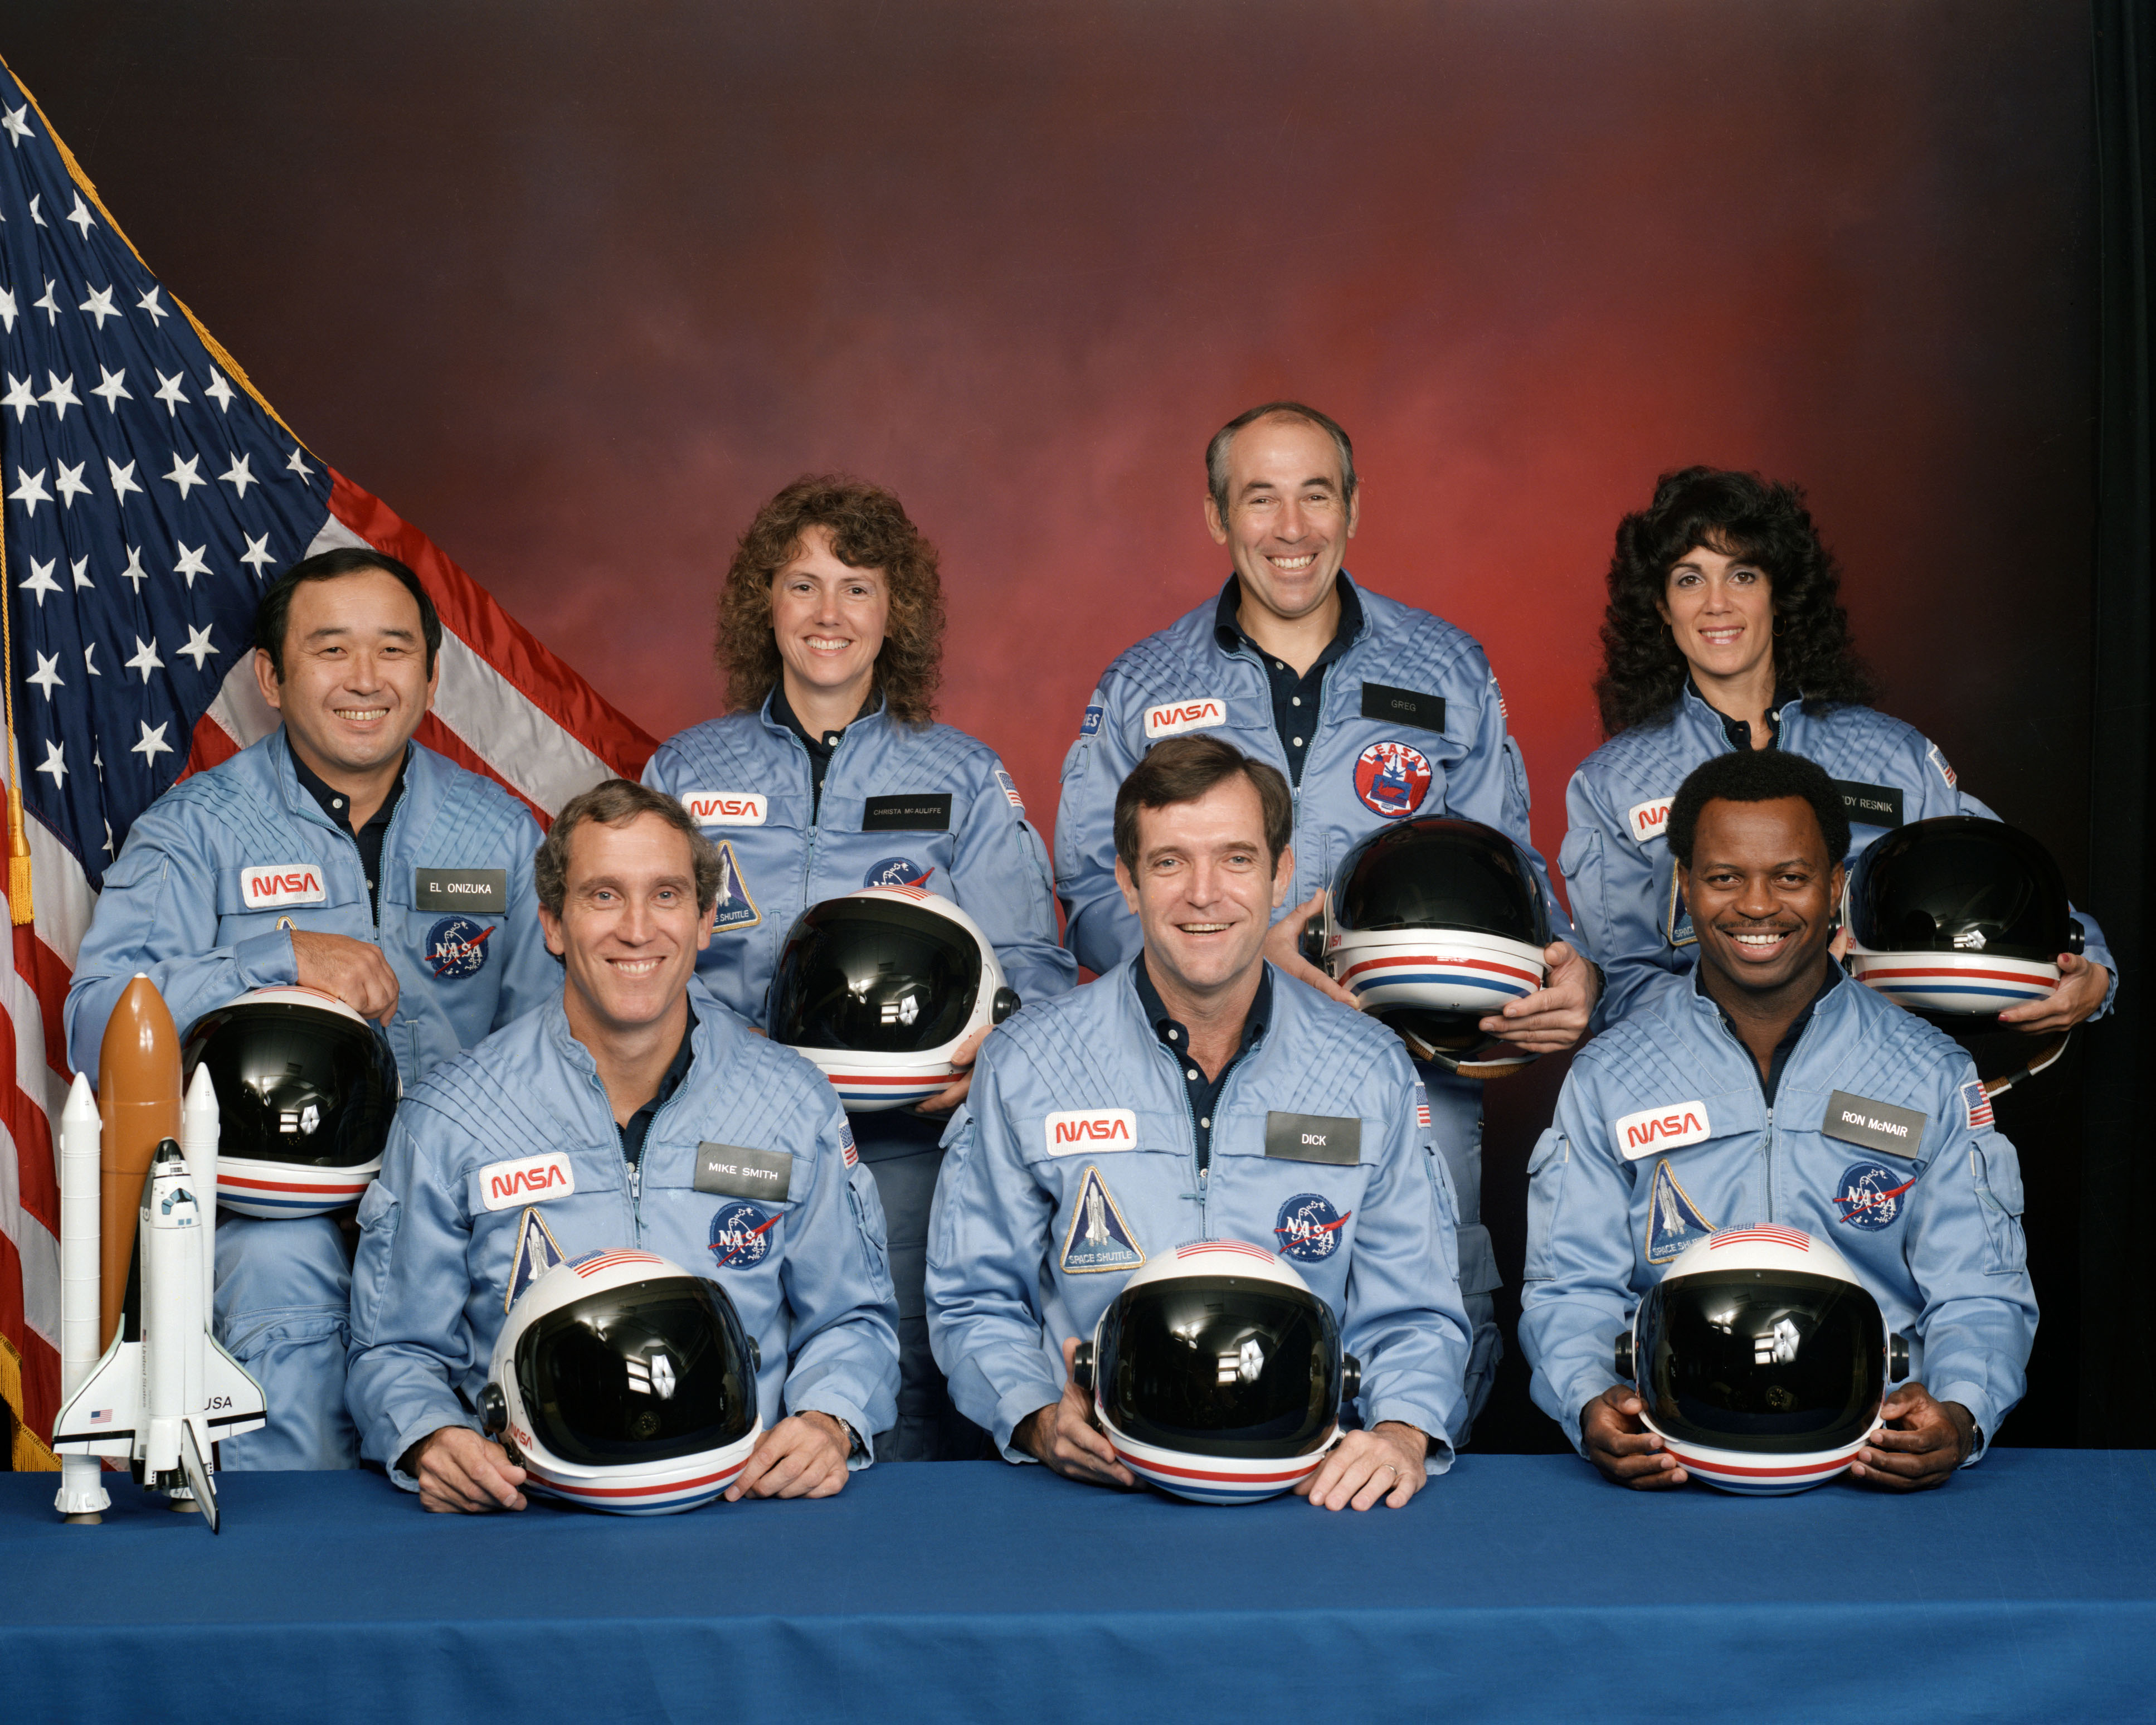 5 Sizes! Restored Satin Finish Photo Final Crew of Space Shuttle Challenger